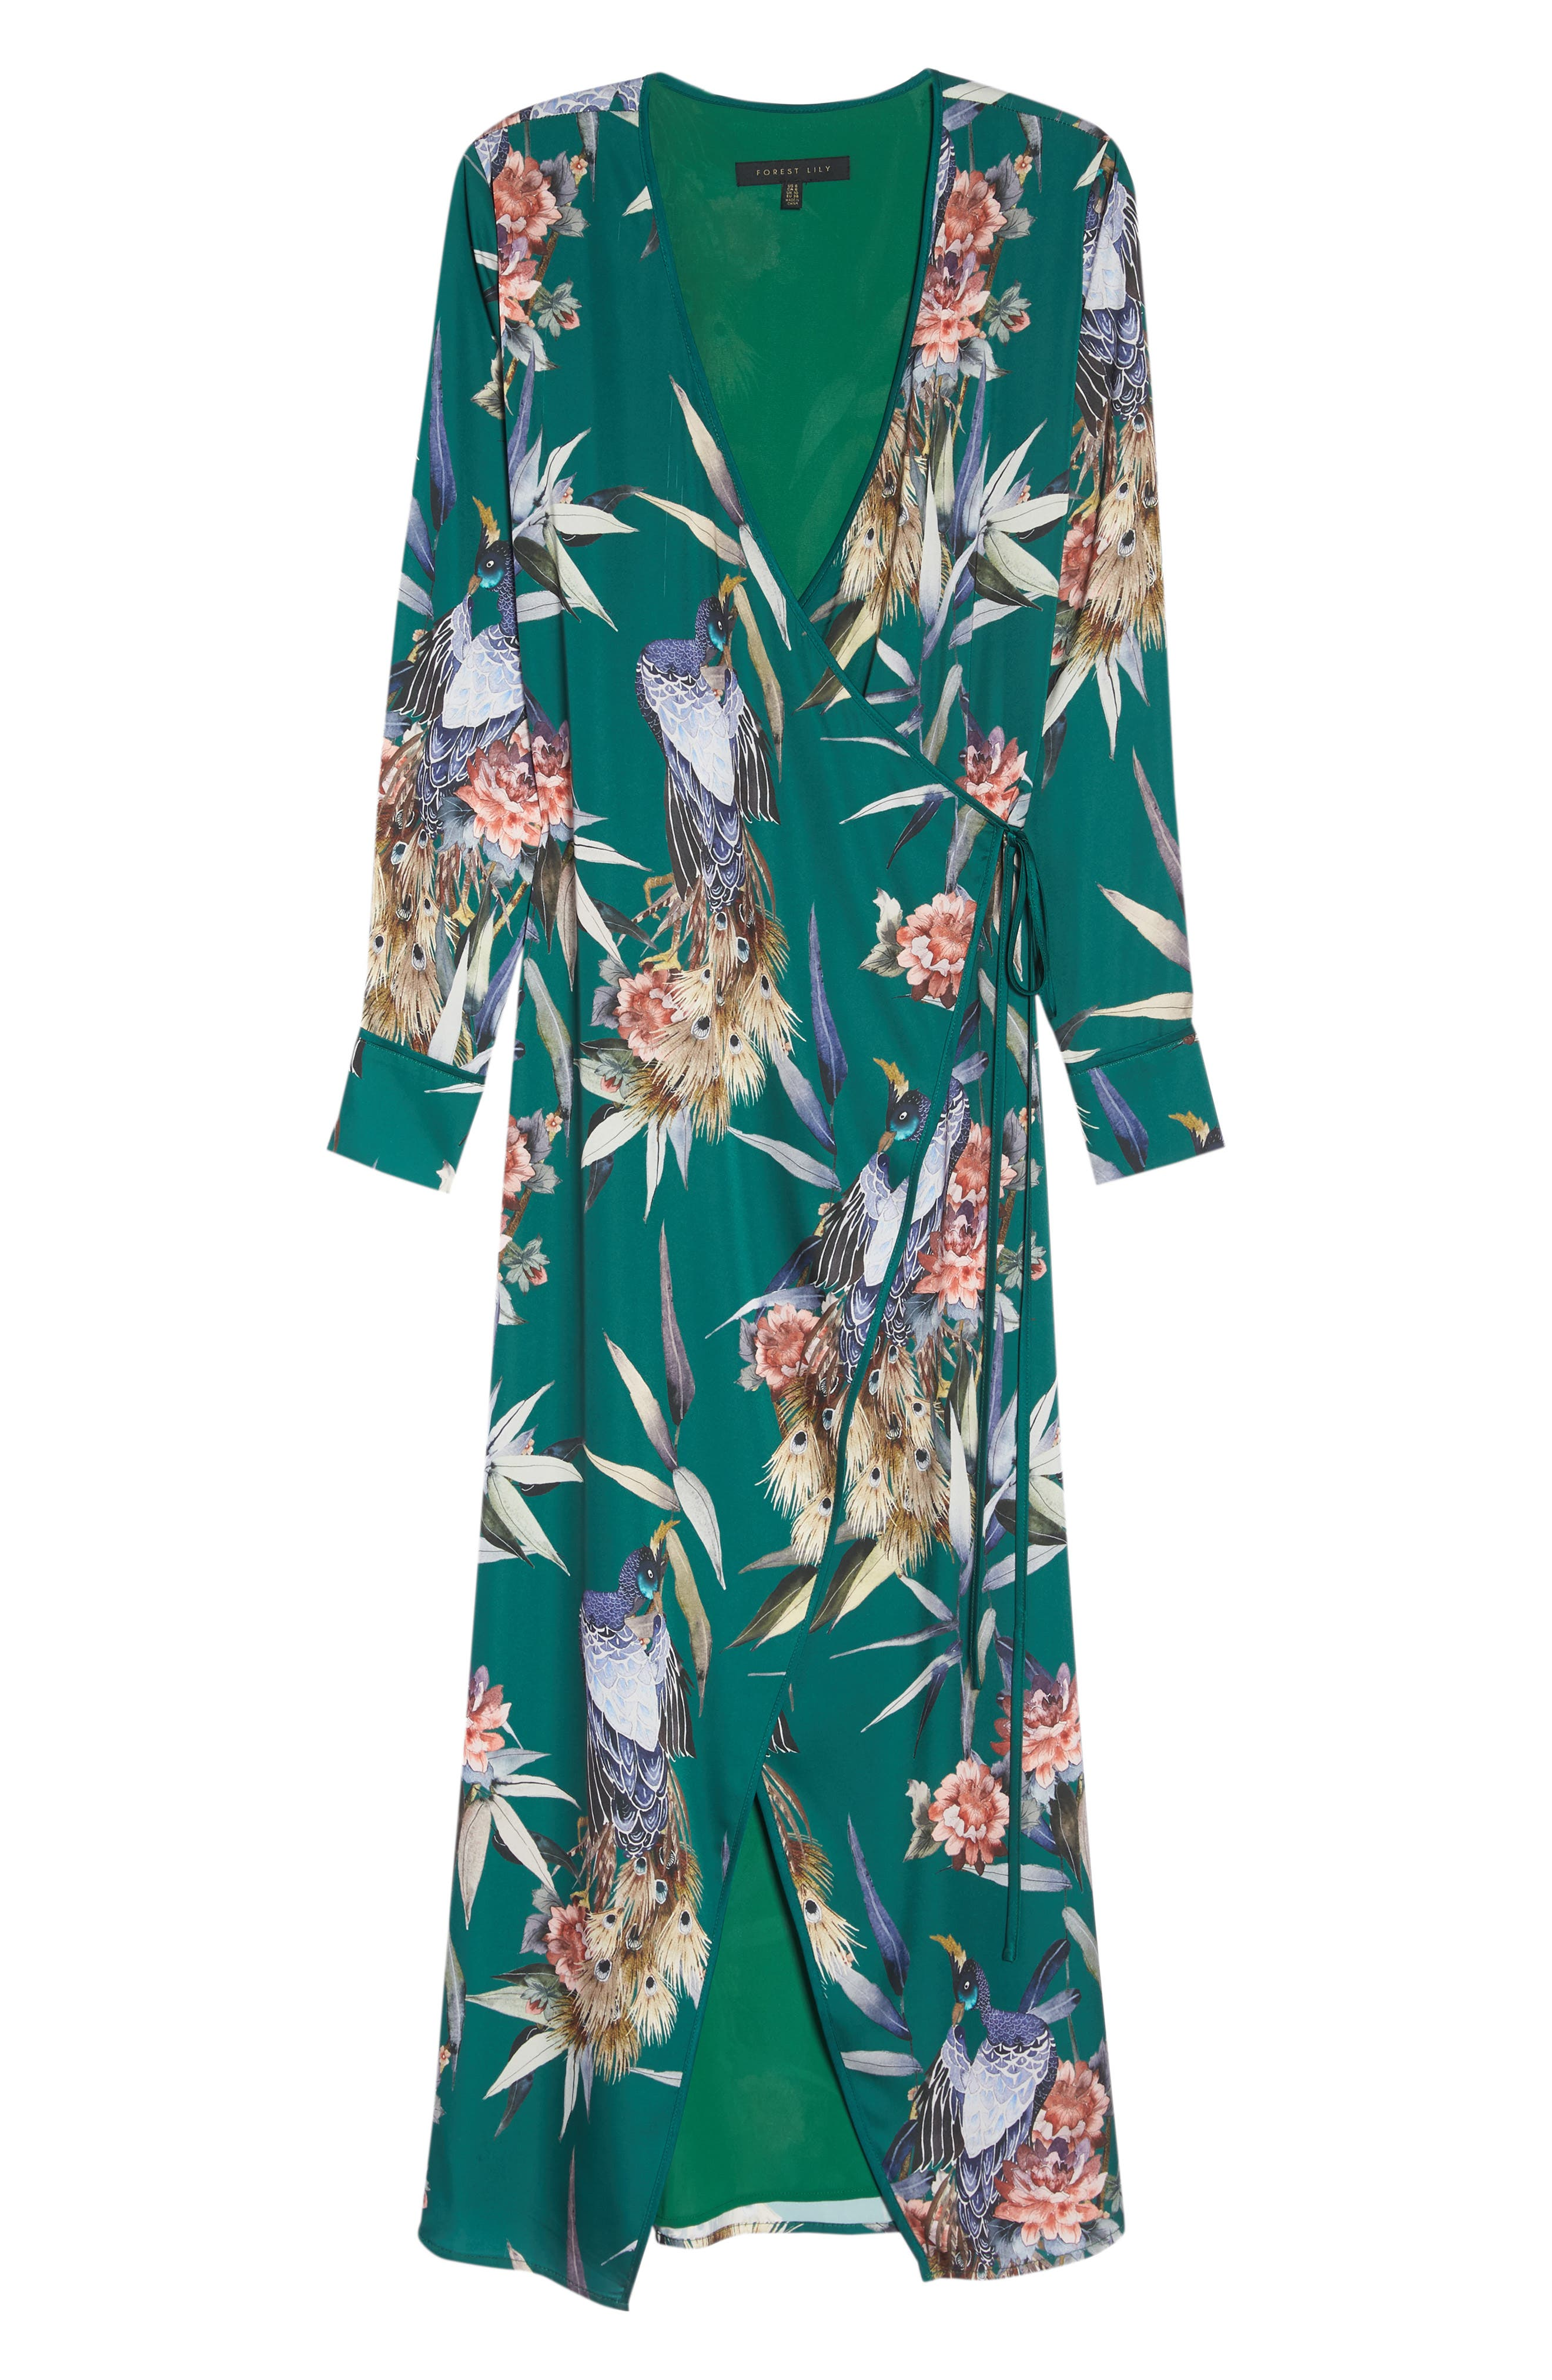 FOREST LILY,                             Floral Print Wrap Dress,                             Alternate thumbnail 7, color,                             EVERGREEN COMBO